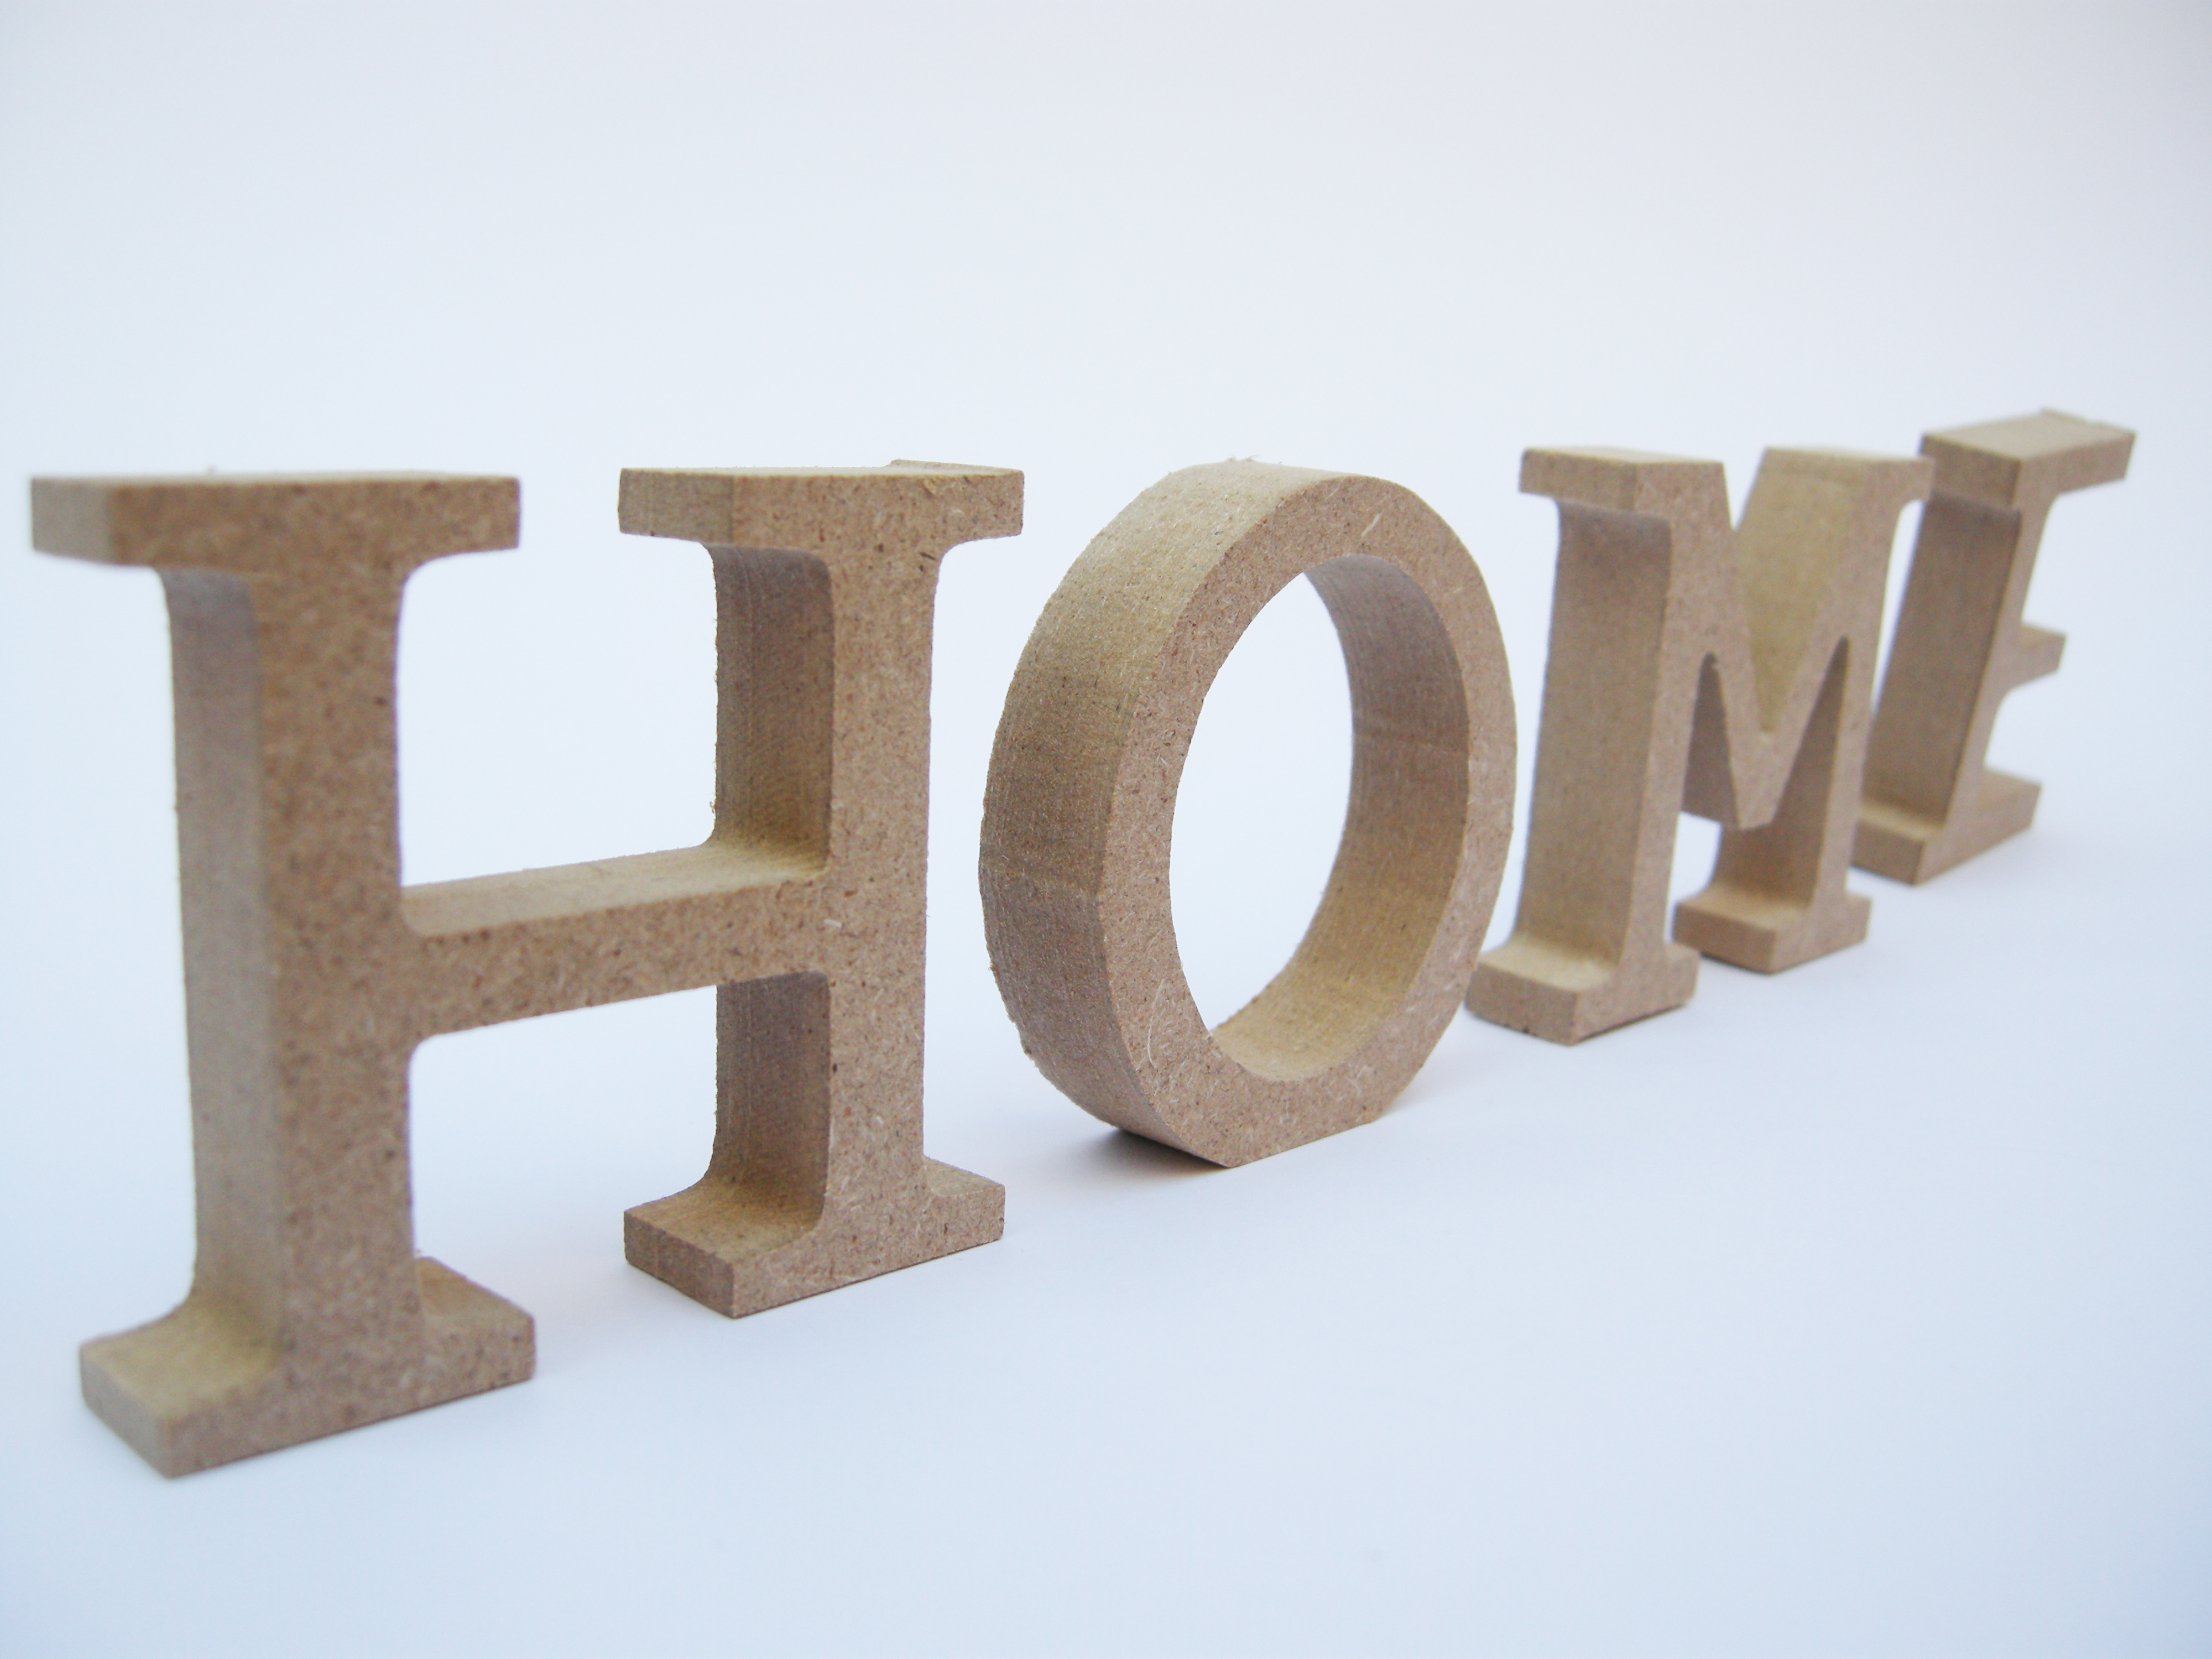 MDF 'Home' Letters - Workspace Wednesday - Home Button Home... at www.elistonbutton.com - Eliston Button - That Crafty Kid – Art, Design, Craft & Adventure.